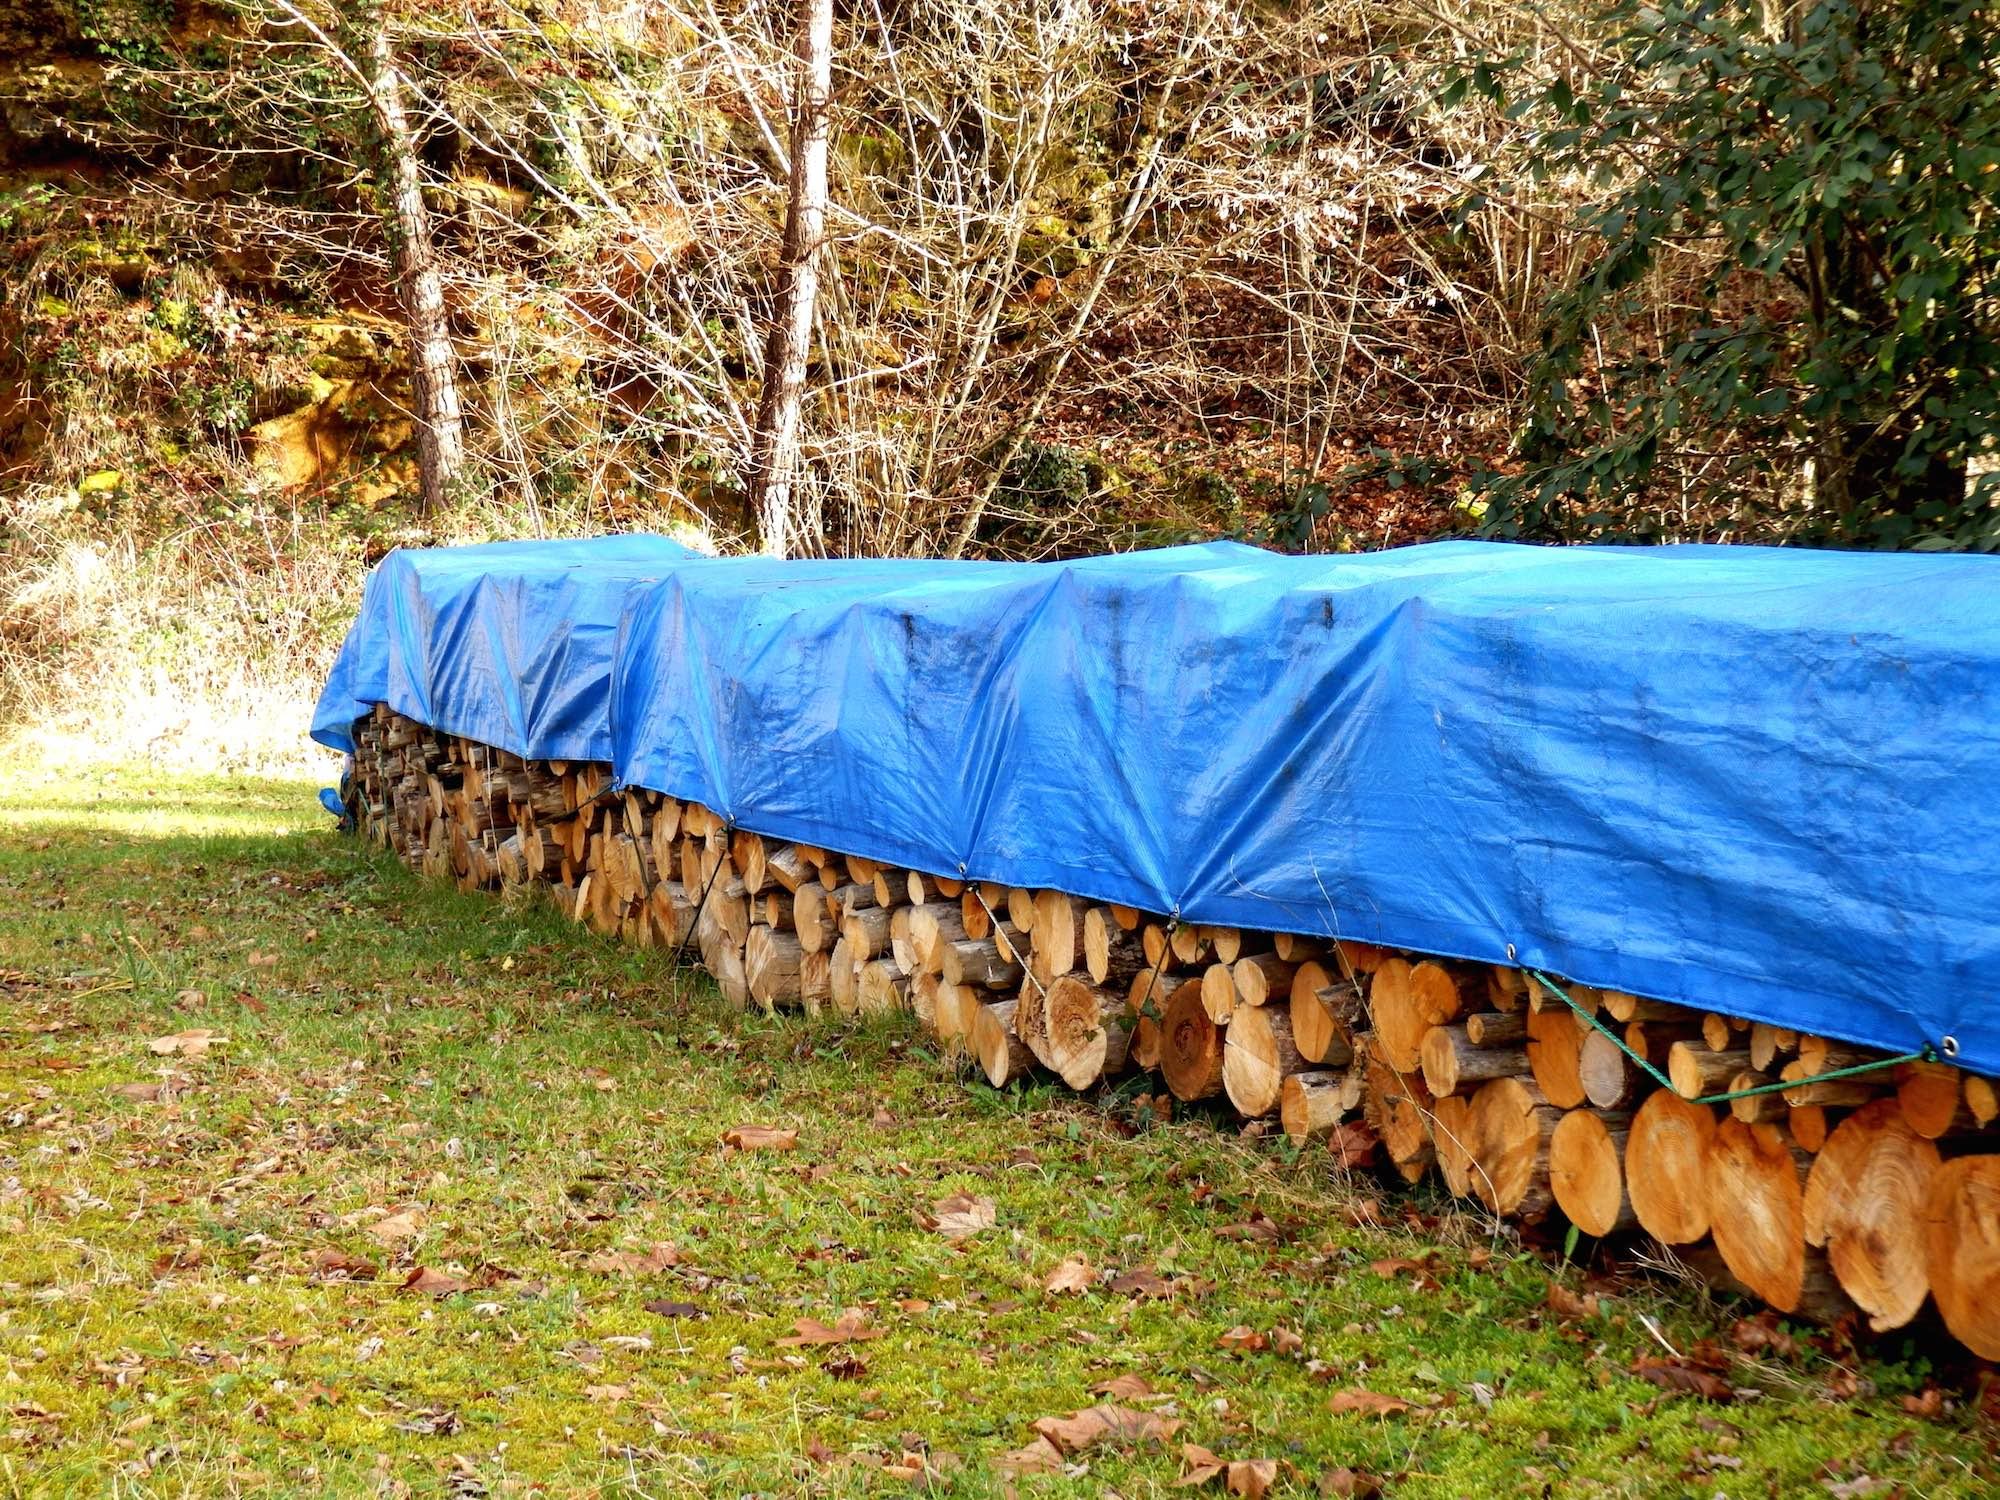 A Blue tarpaulin being used to protect and cover wood by Yuzet®.